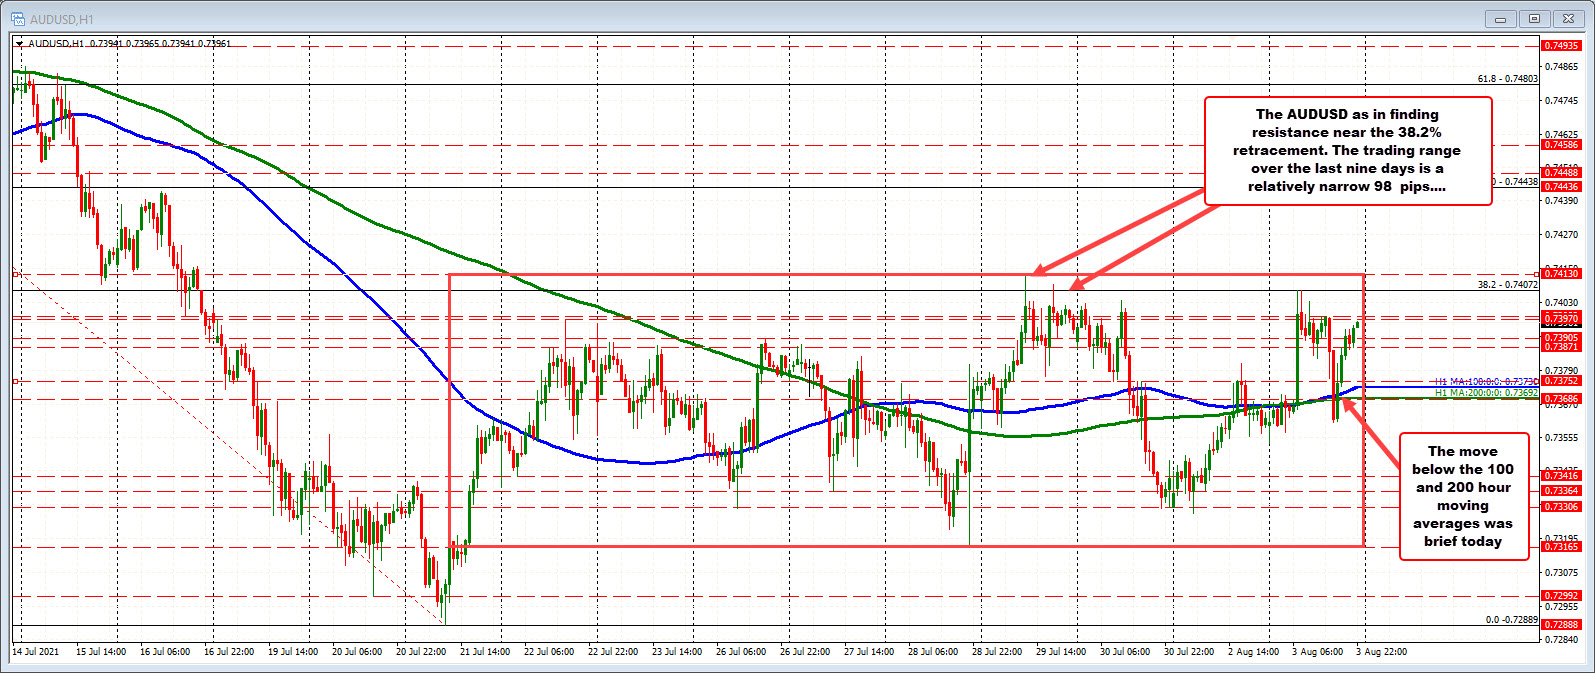 AUDUSD has had an up down and back up day